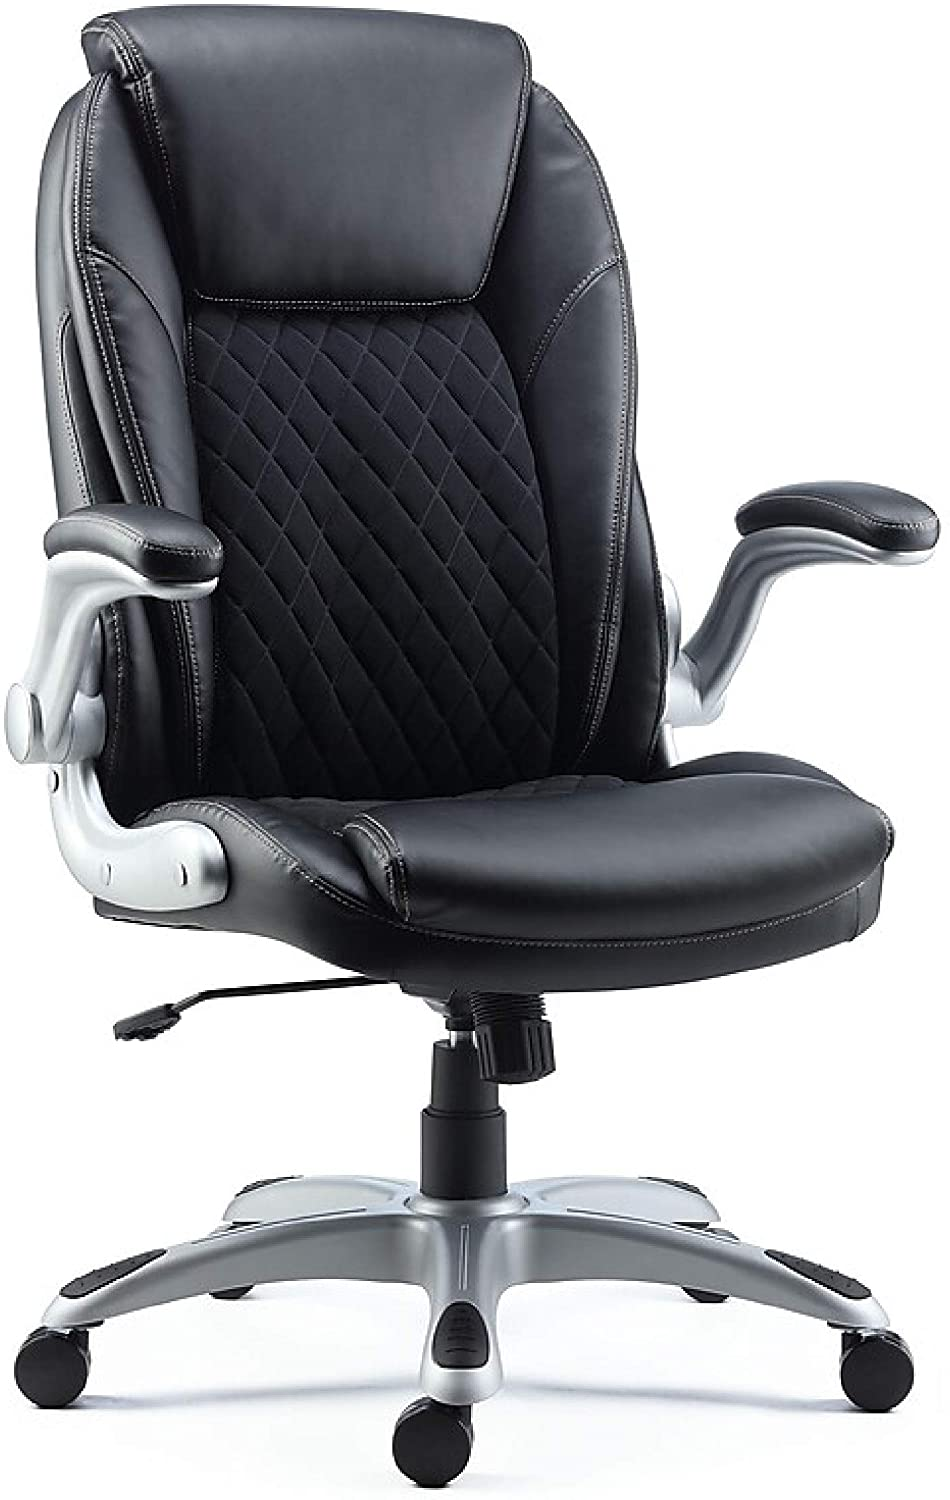 Staples Sorina Bonded Leather Chair, Black (51471)